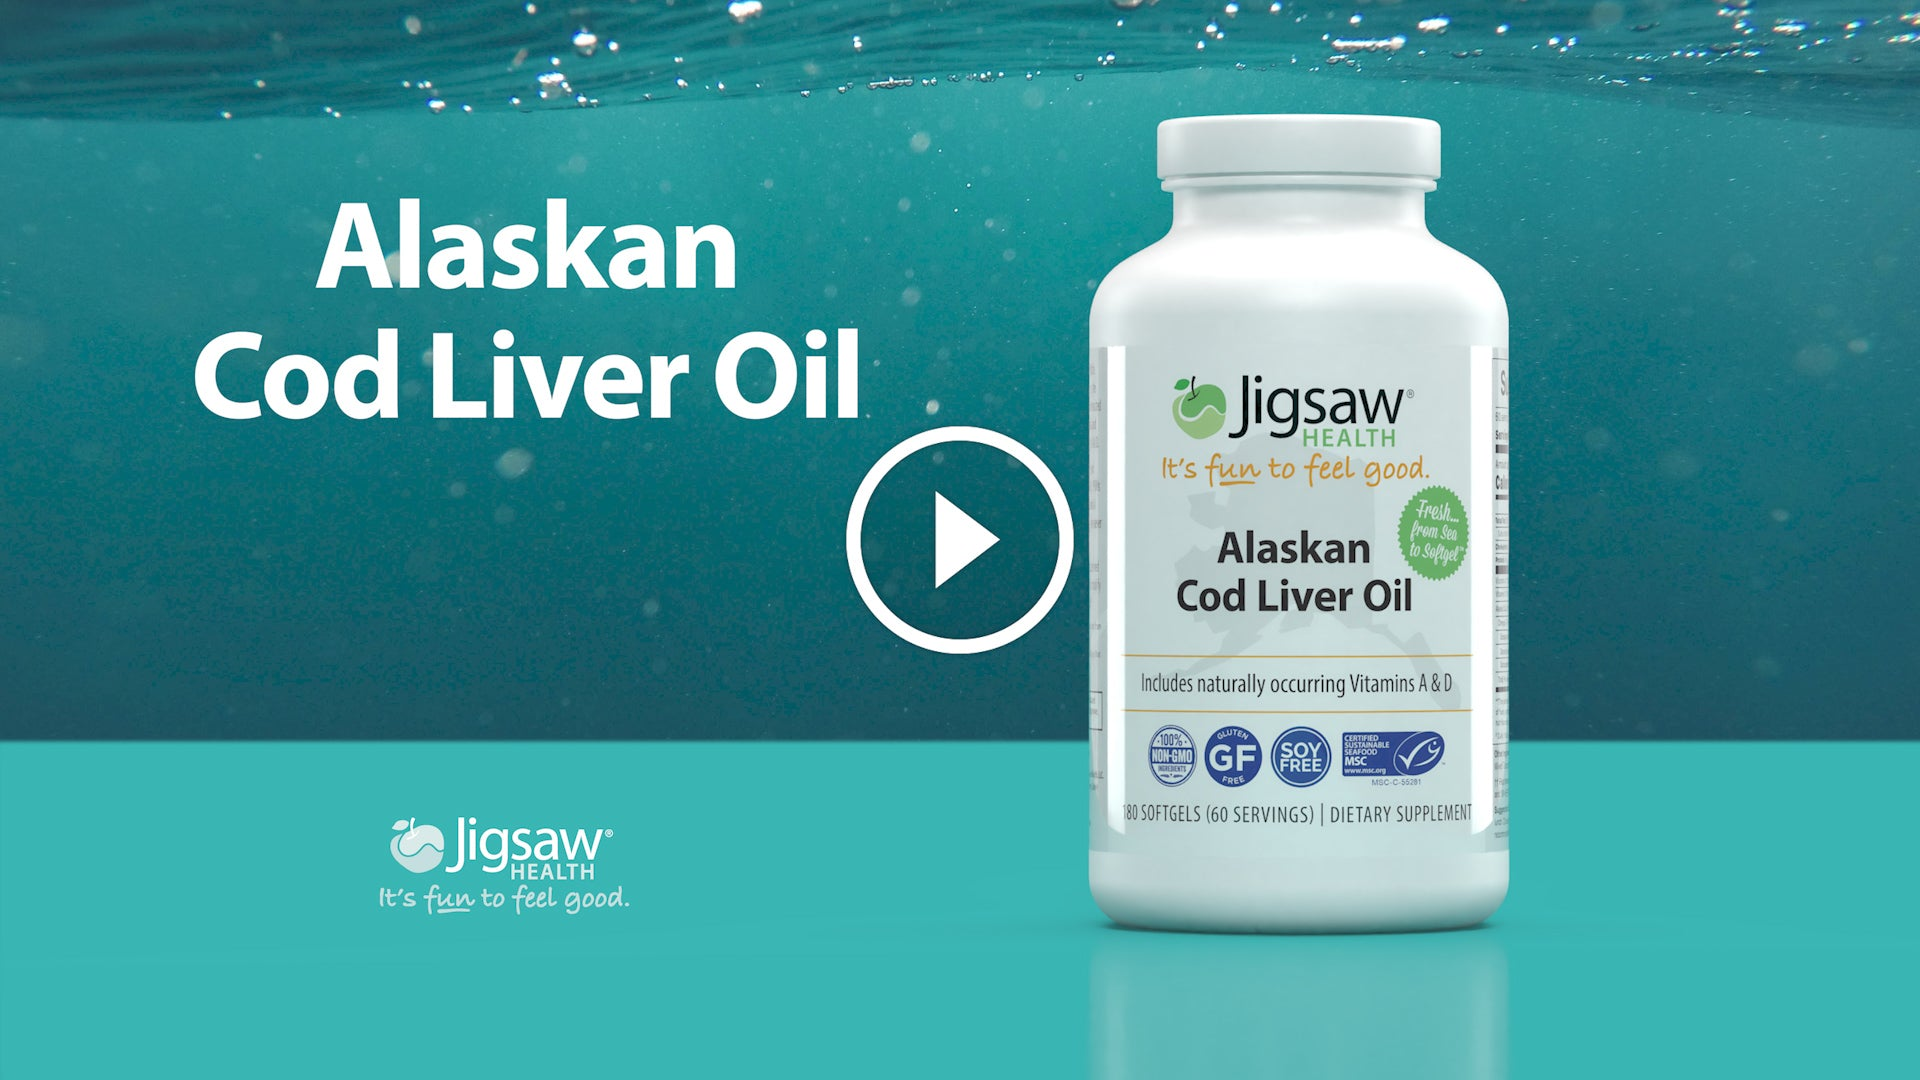 What is Alaskan Cod Liver Oil?